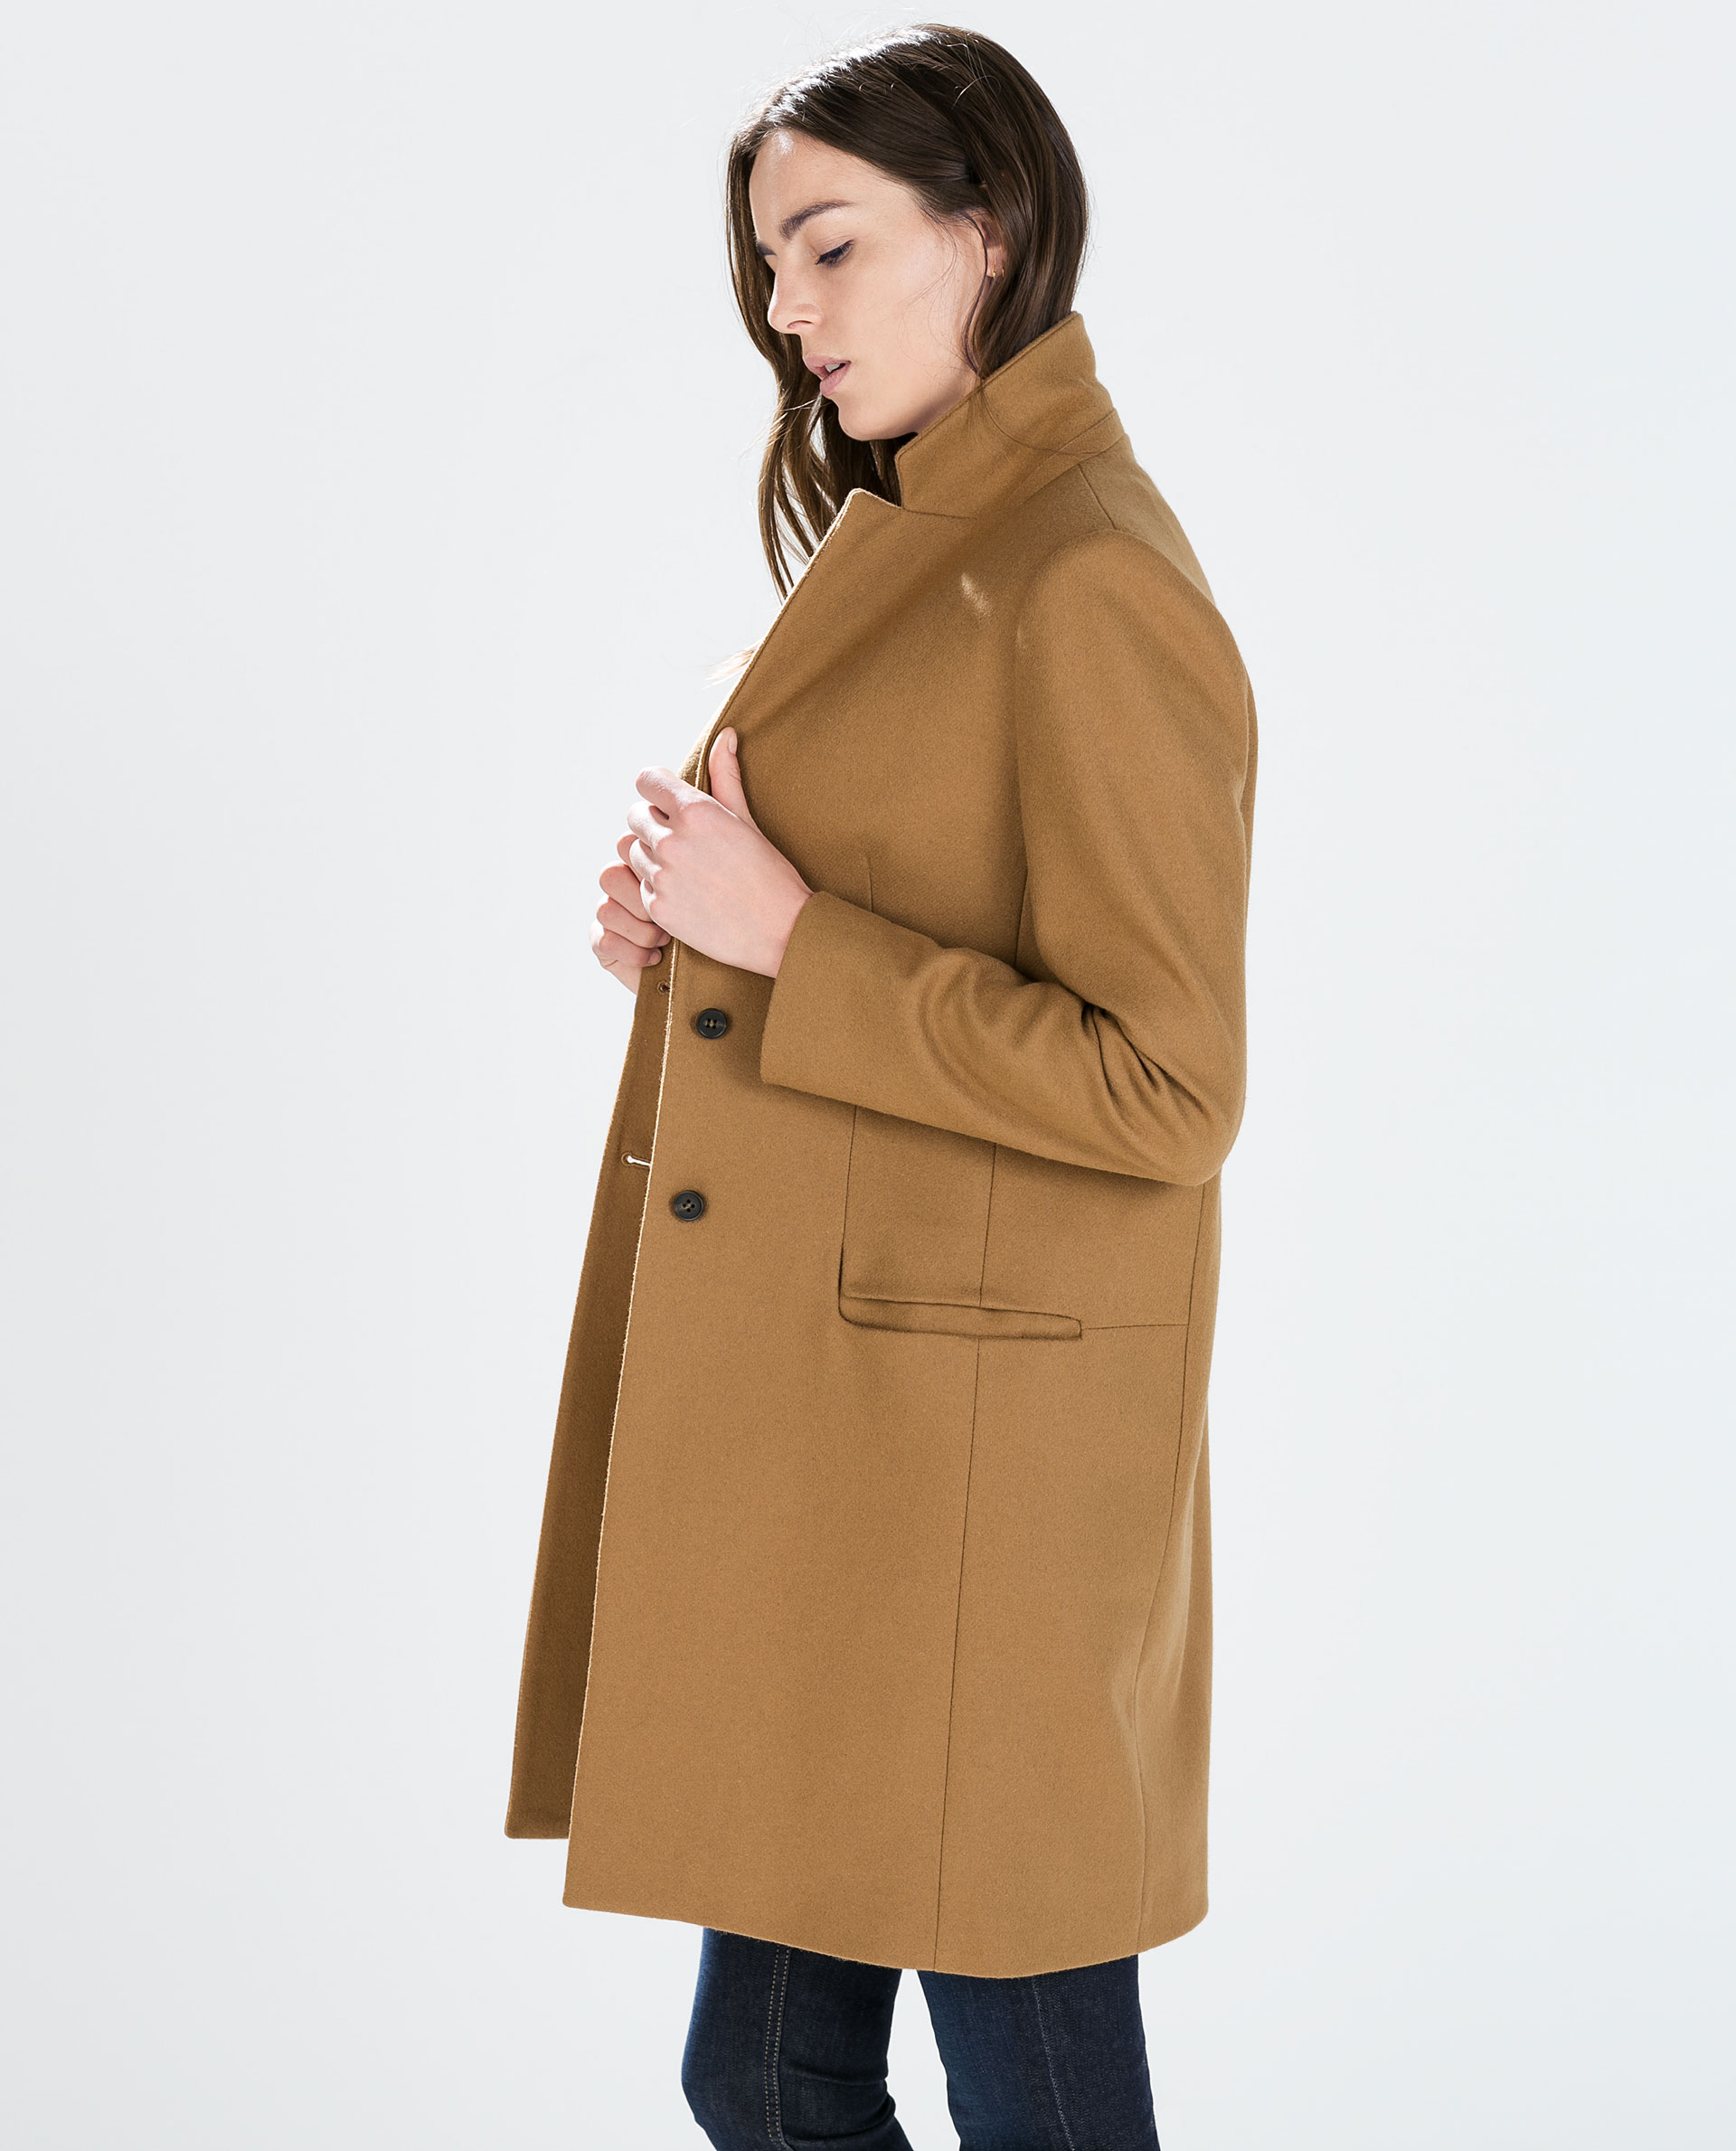 Scroll down for our picks for camel coats, for every budget. This coat from Aritzia is a favorite of the bunch since it combines wide lapels, a below-the-knee length, and belted waist. Plus, it's made from cashmere wool, so it's super soft.